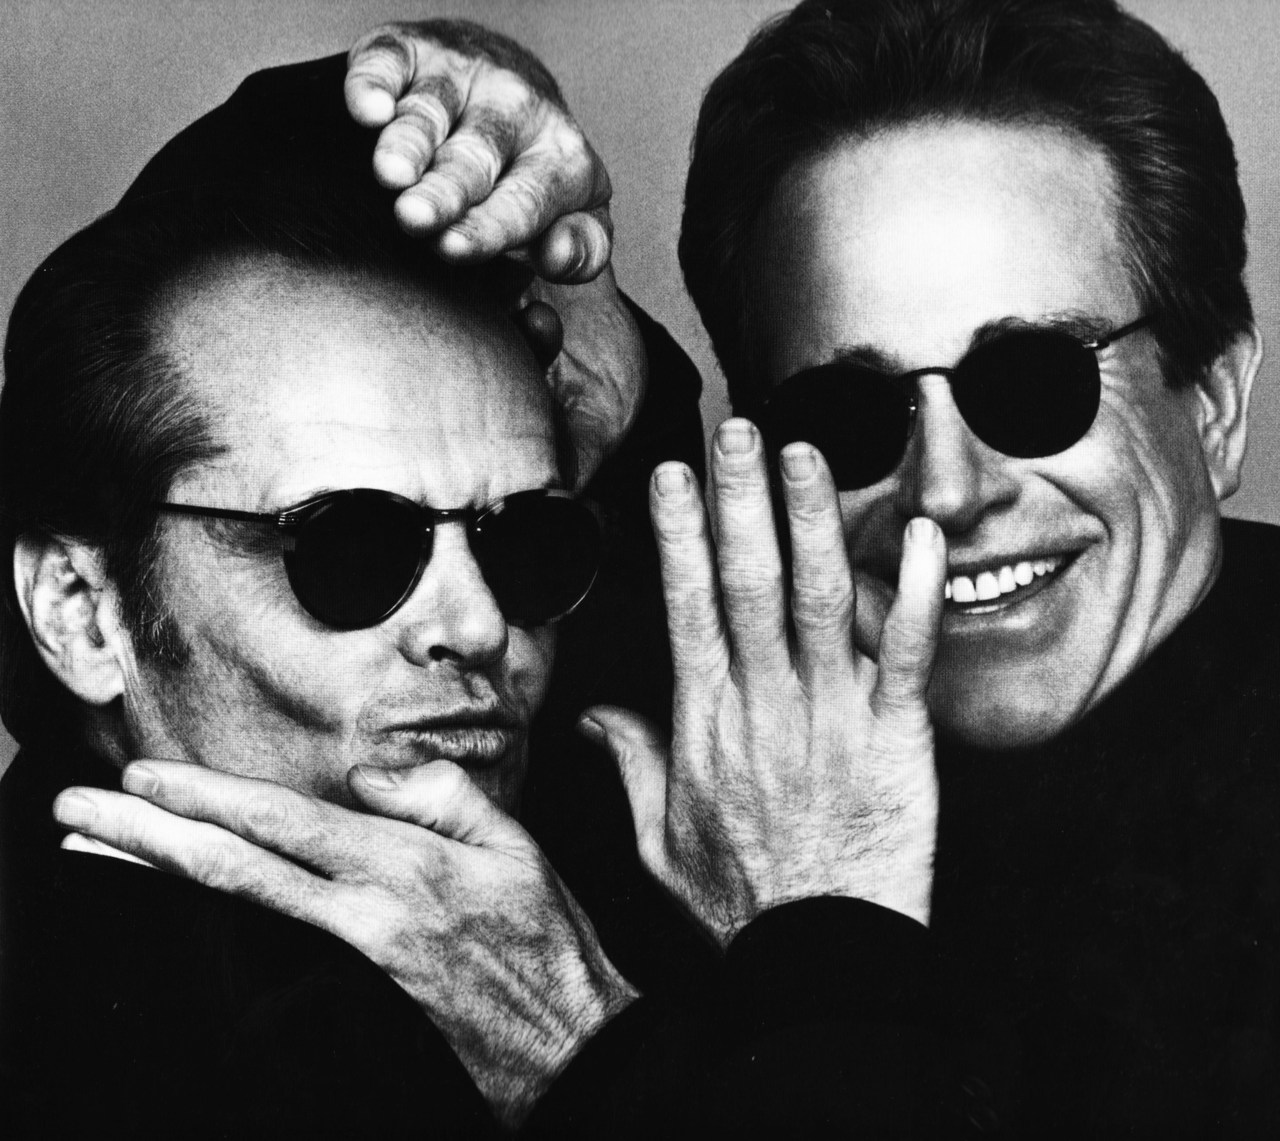 Mr. Jack Nicholson & Mr. Warren Beatty